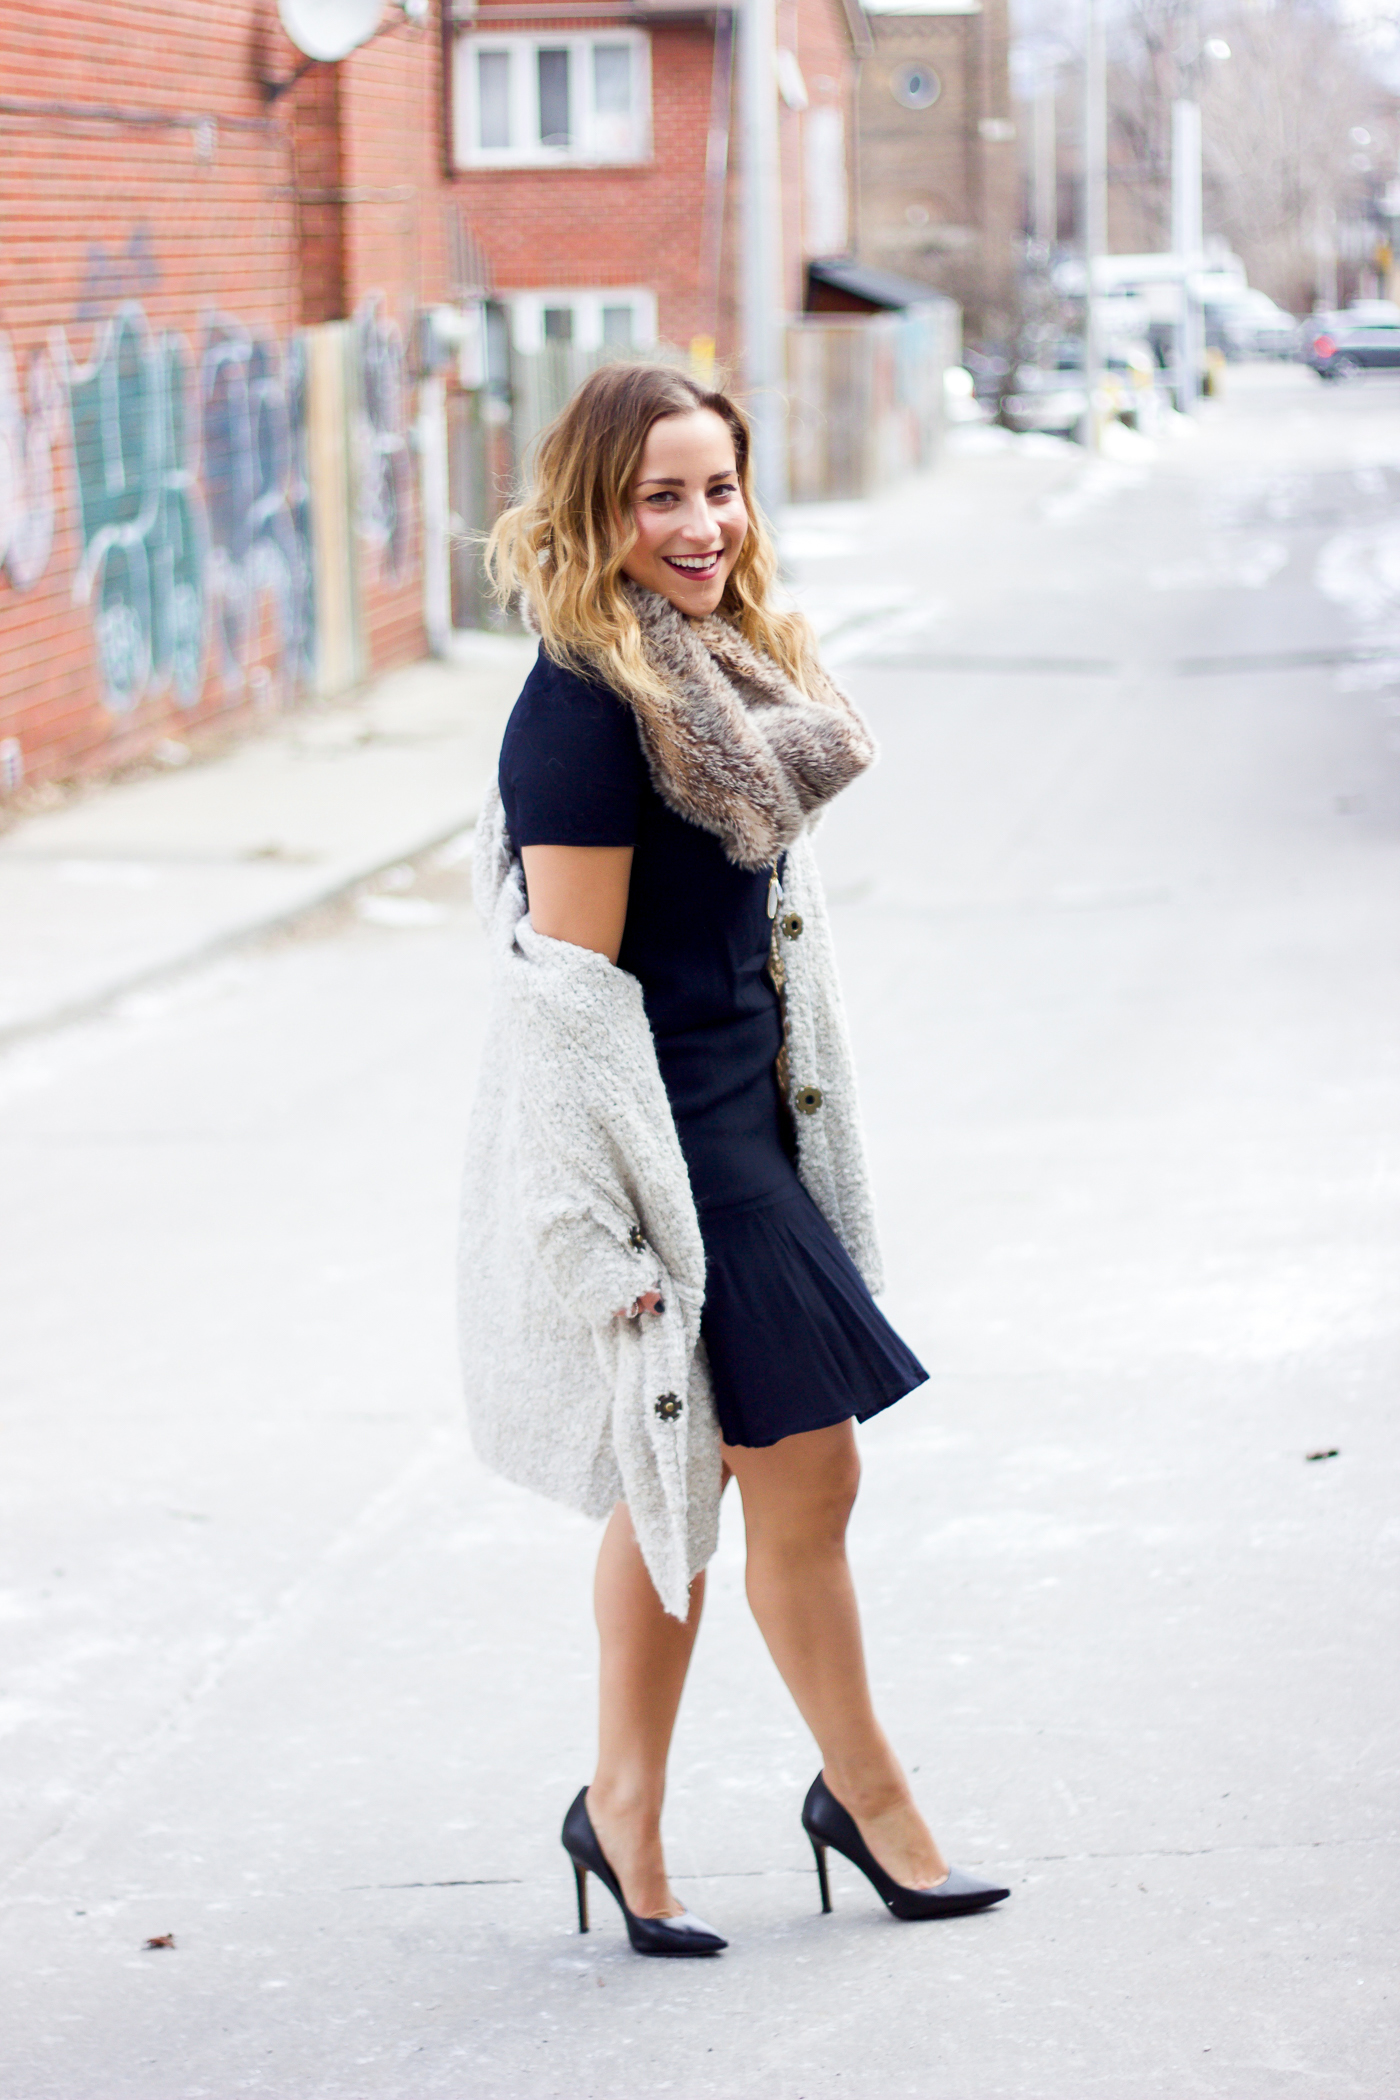 Canadian fashion blogger, Jackie Goldhar from Something About That, is wearing a black dress from Gap with a Free People cardigan and faux fur scarf